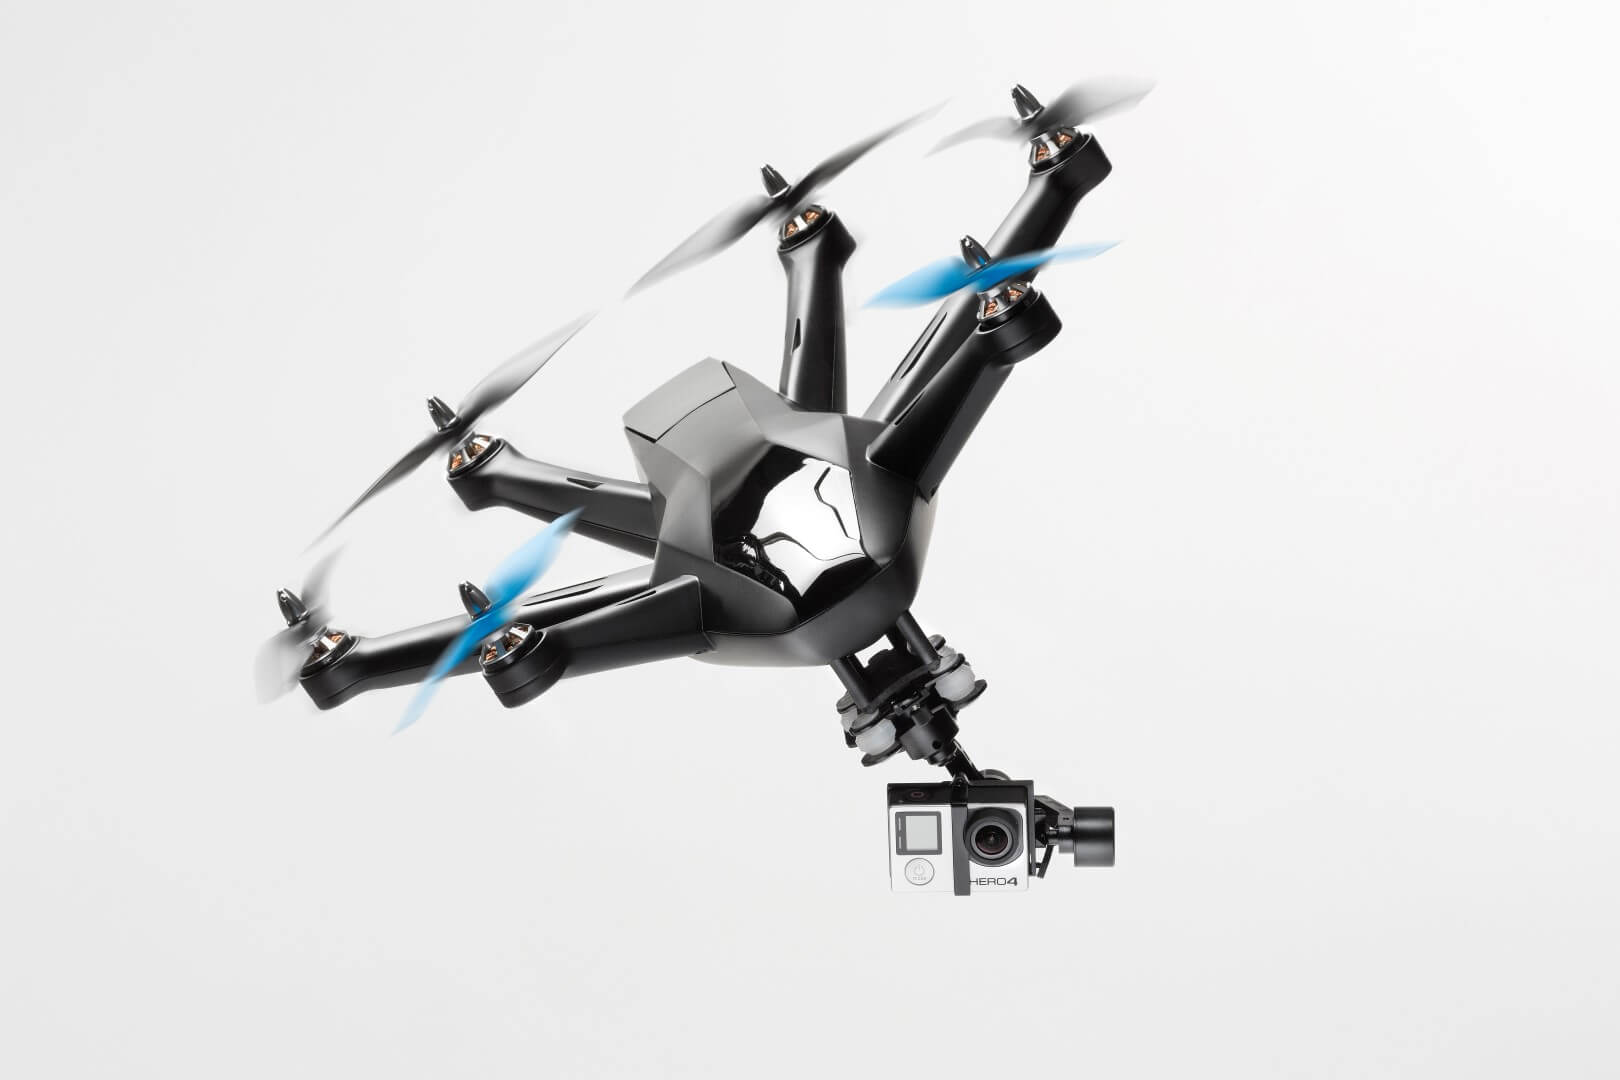 Professional Auto Follow Camera Drone_Online Camera